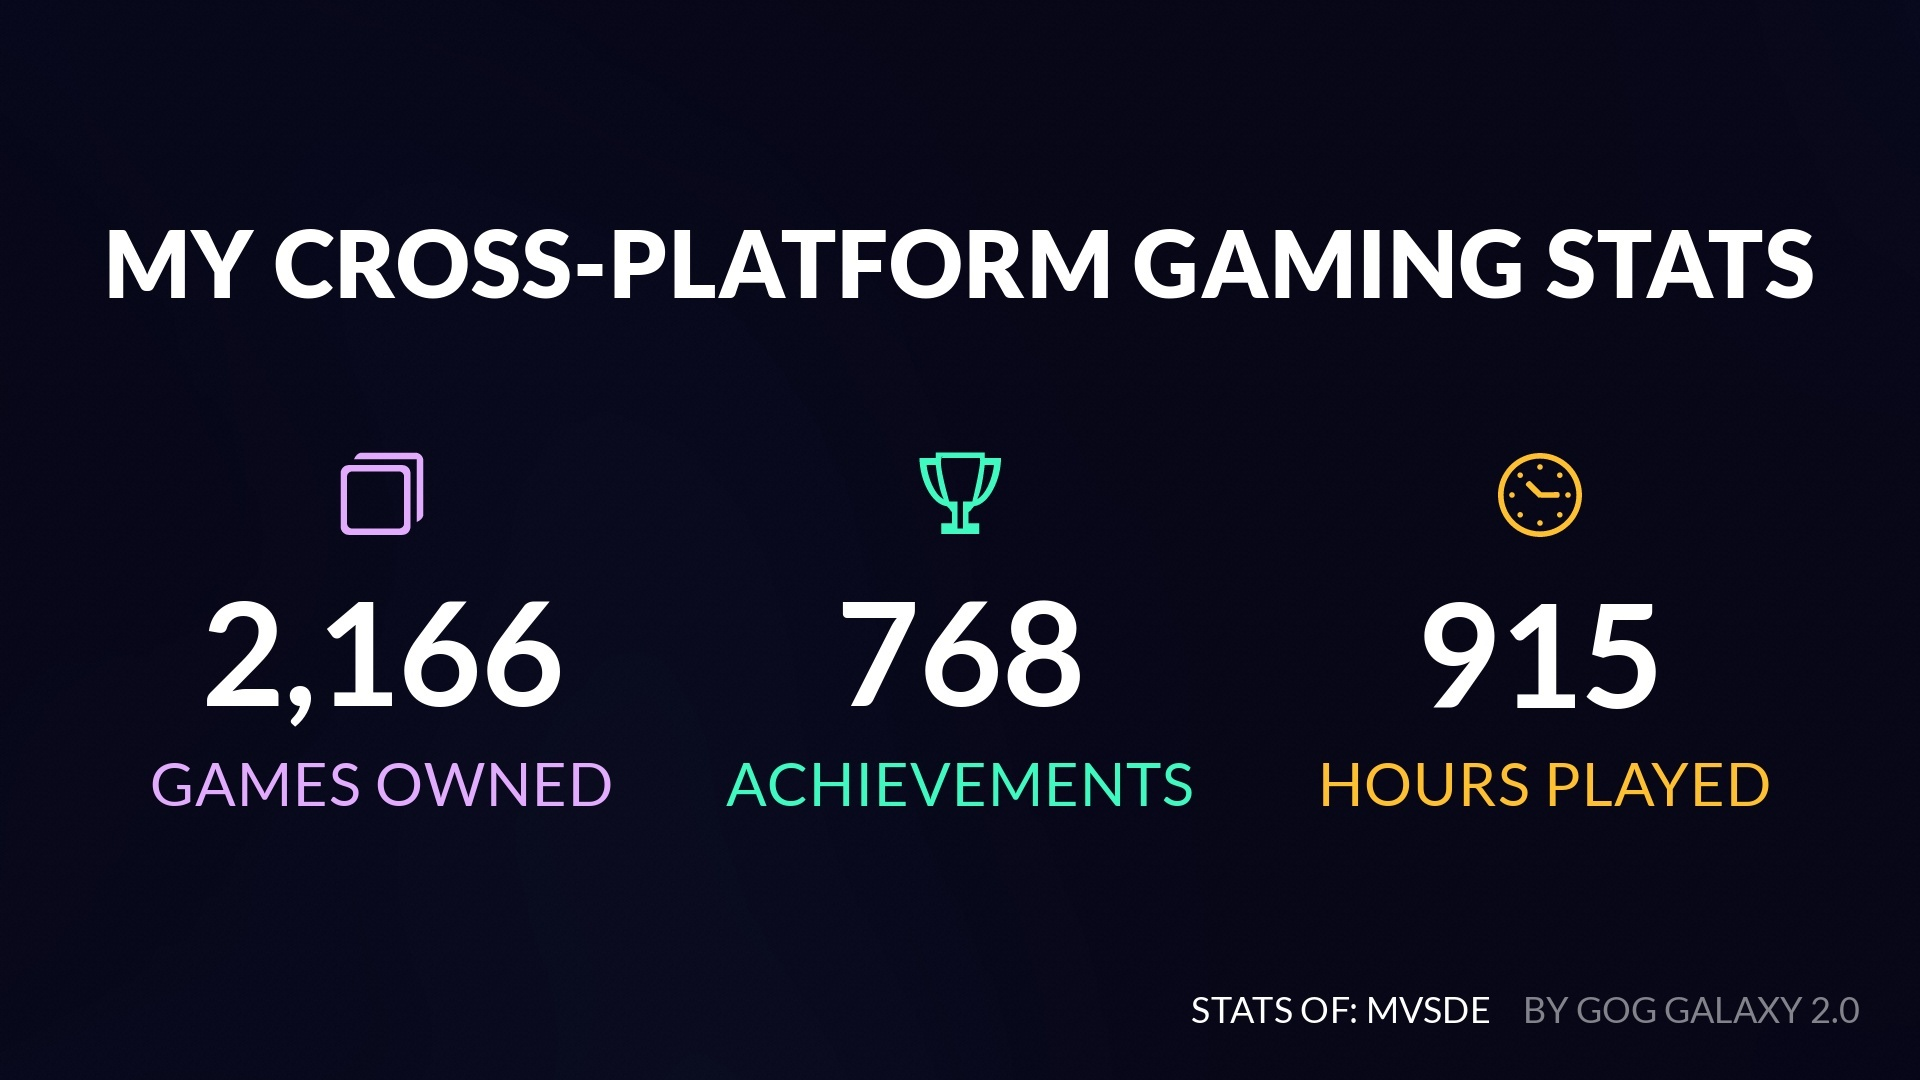 2166 games owned, 768 achievements, 915 hours played.